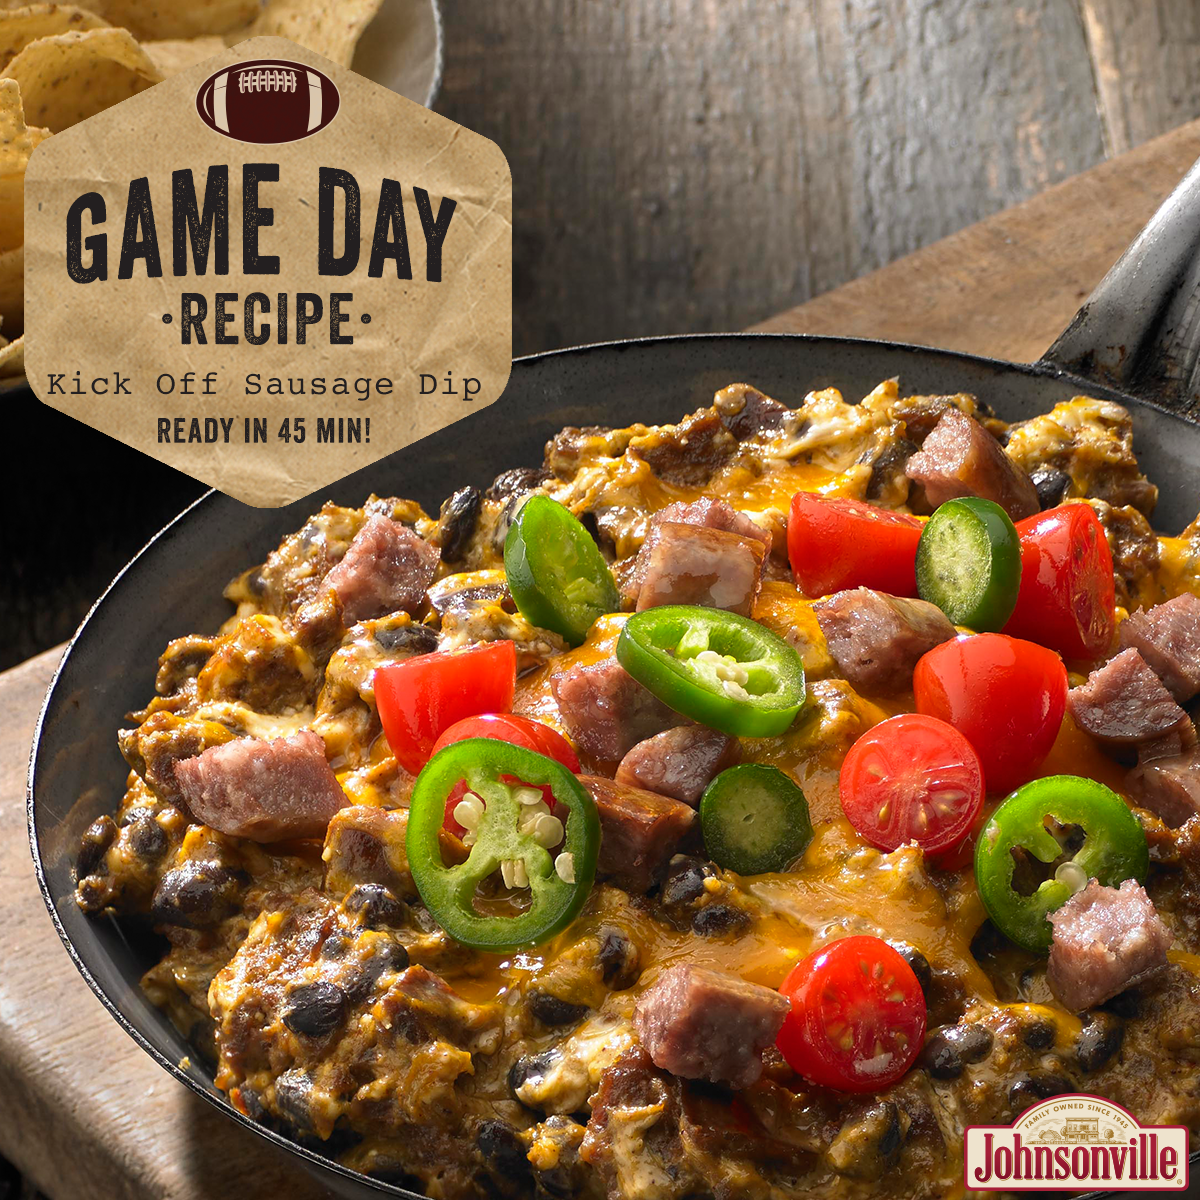 Sausage dip, including sausage, jalapenos, cheese and tomatoes, cooking in a skillet